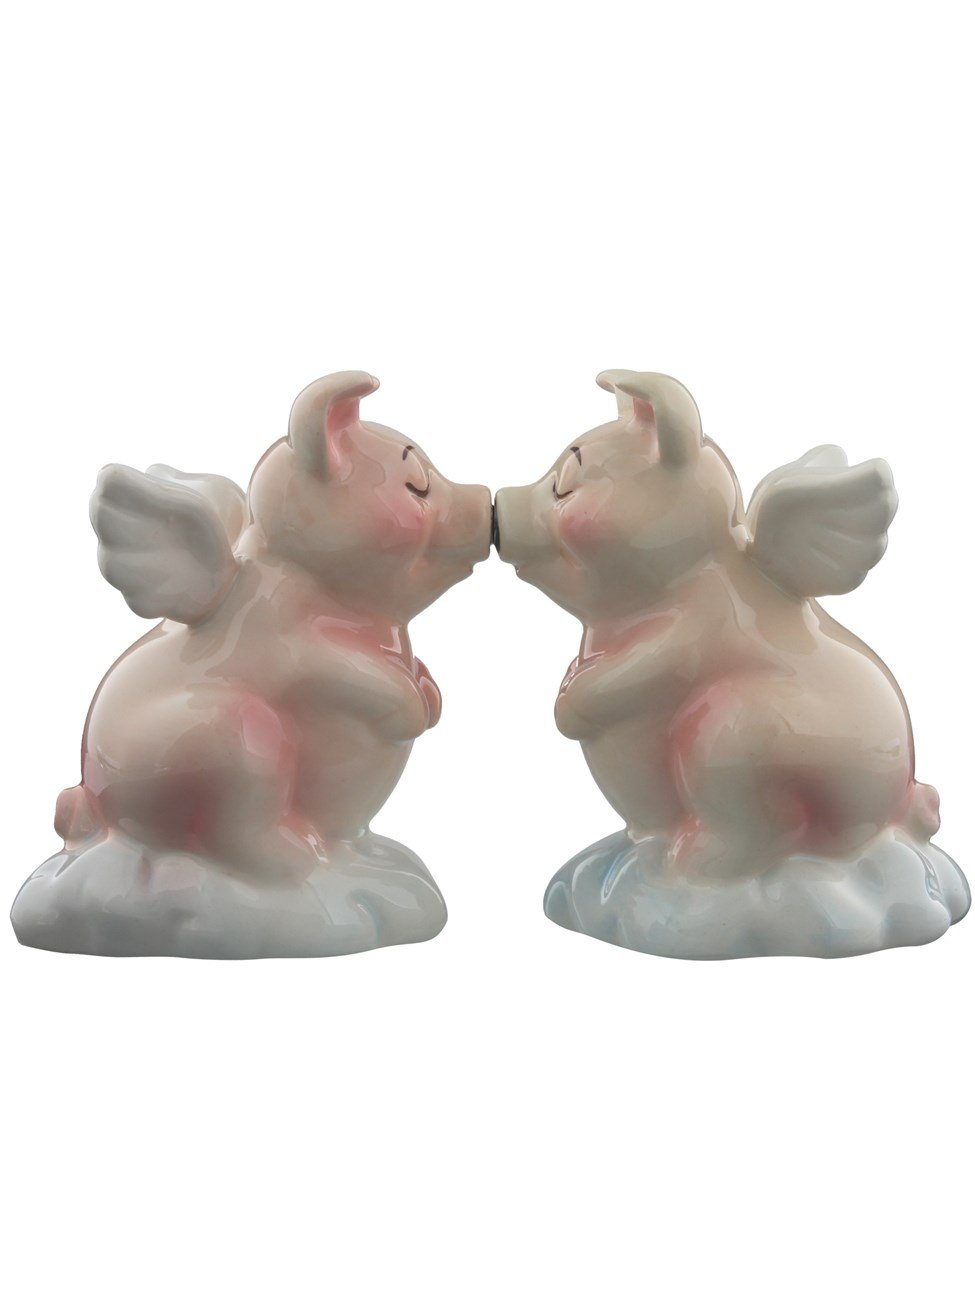 1 X When Pigs Fly Hog Heaven Magnetic Salt & Pepper Shaker Set S/P